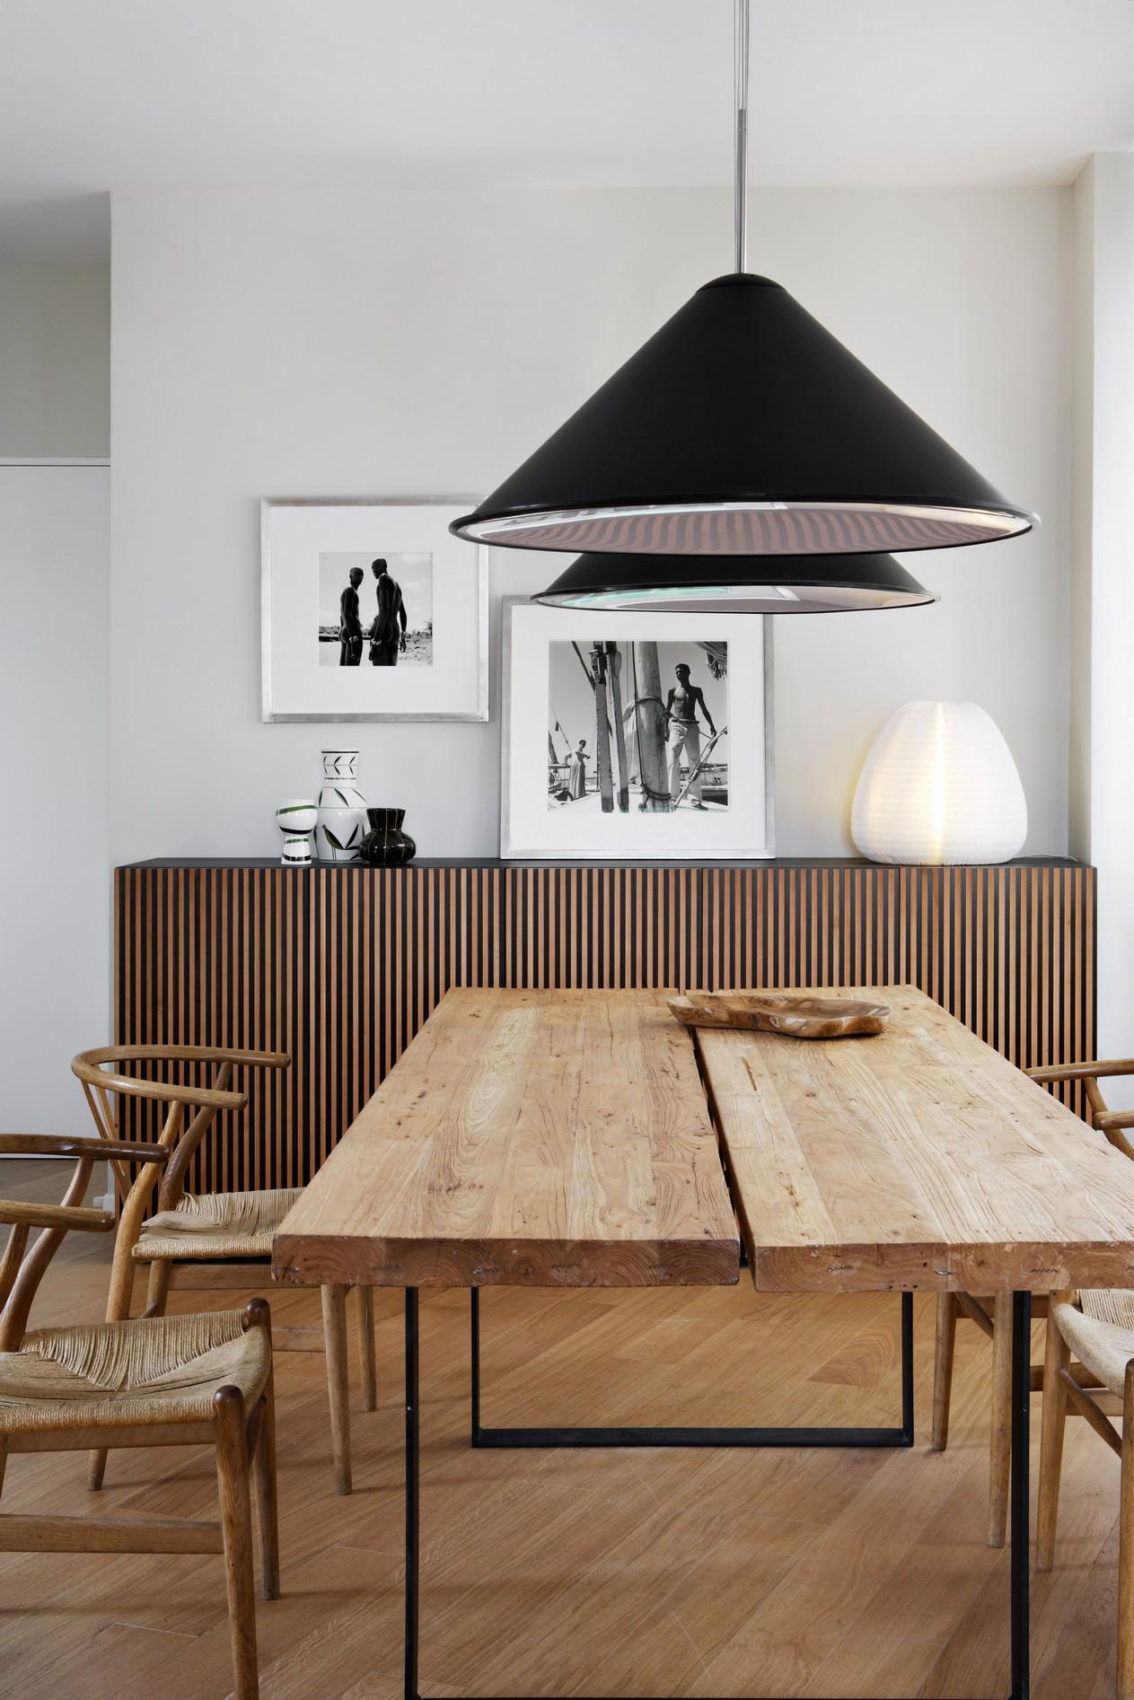 Full Renovation in Rosales by ÁBATON (8)